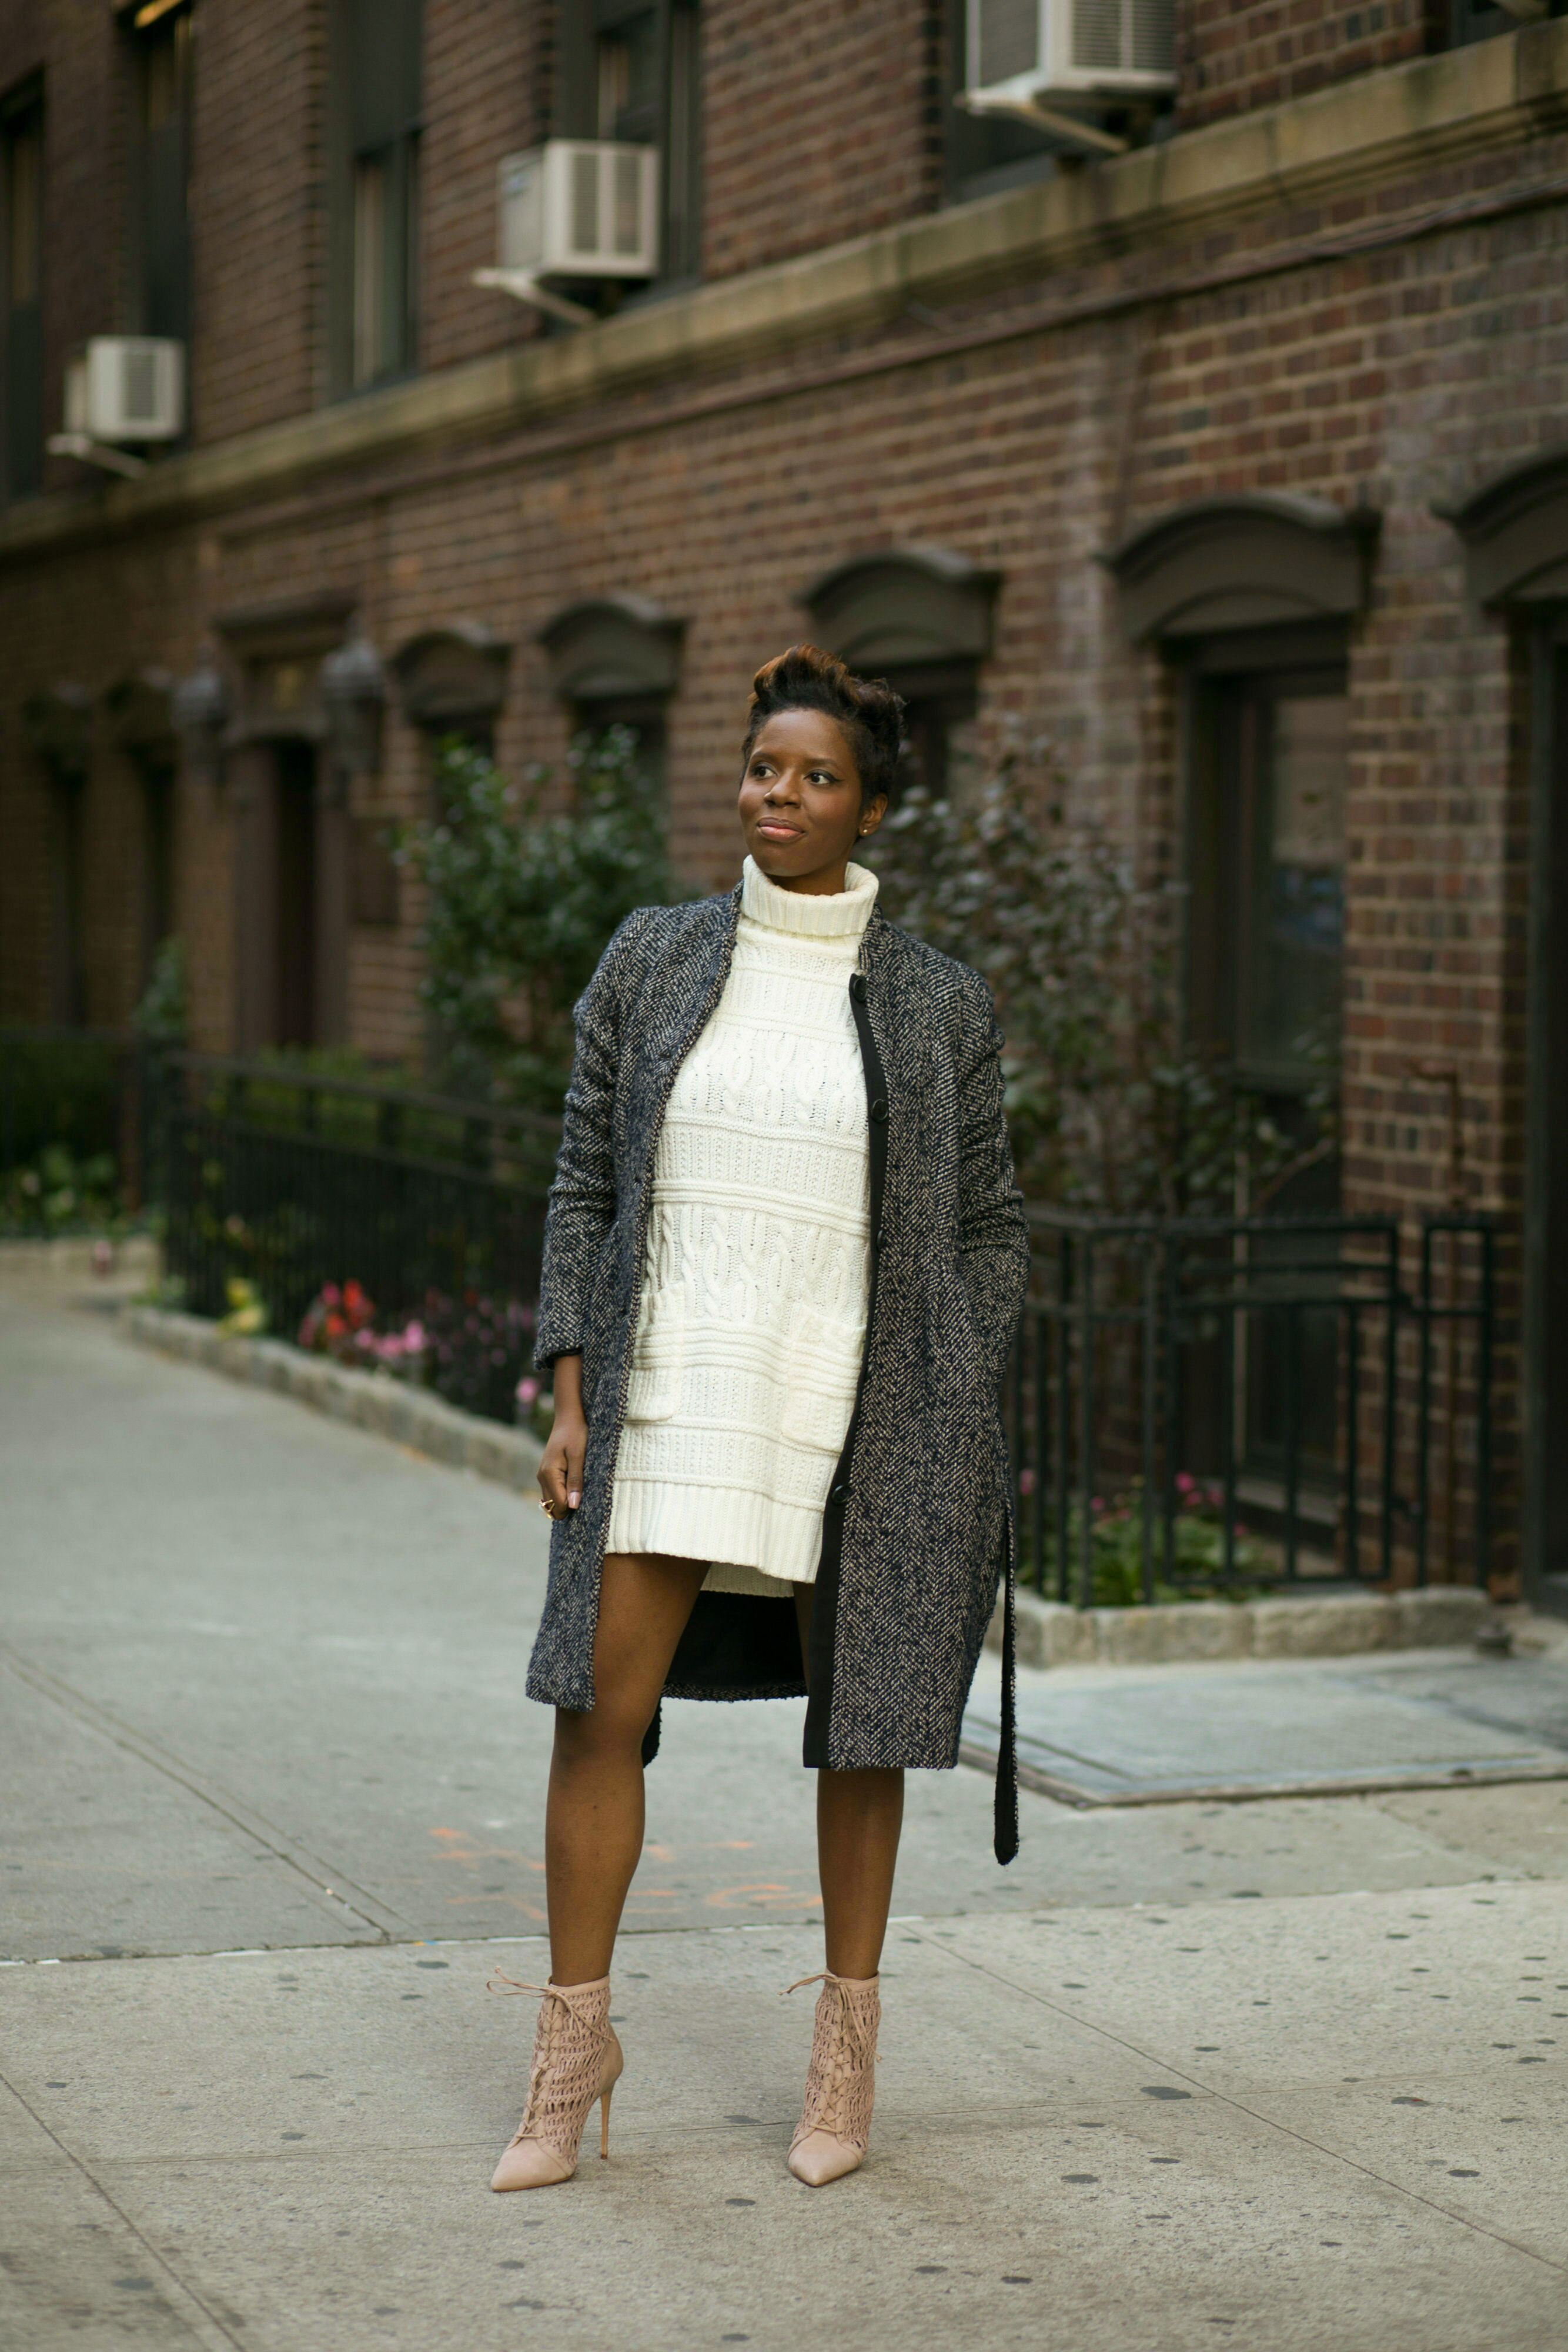 Herringbone Coat Sweater Dress Ankle Boots Nyc Fashion Blogger